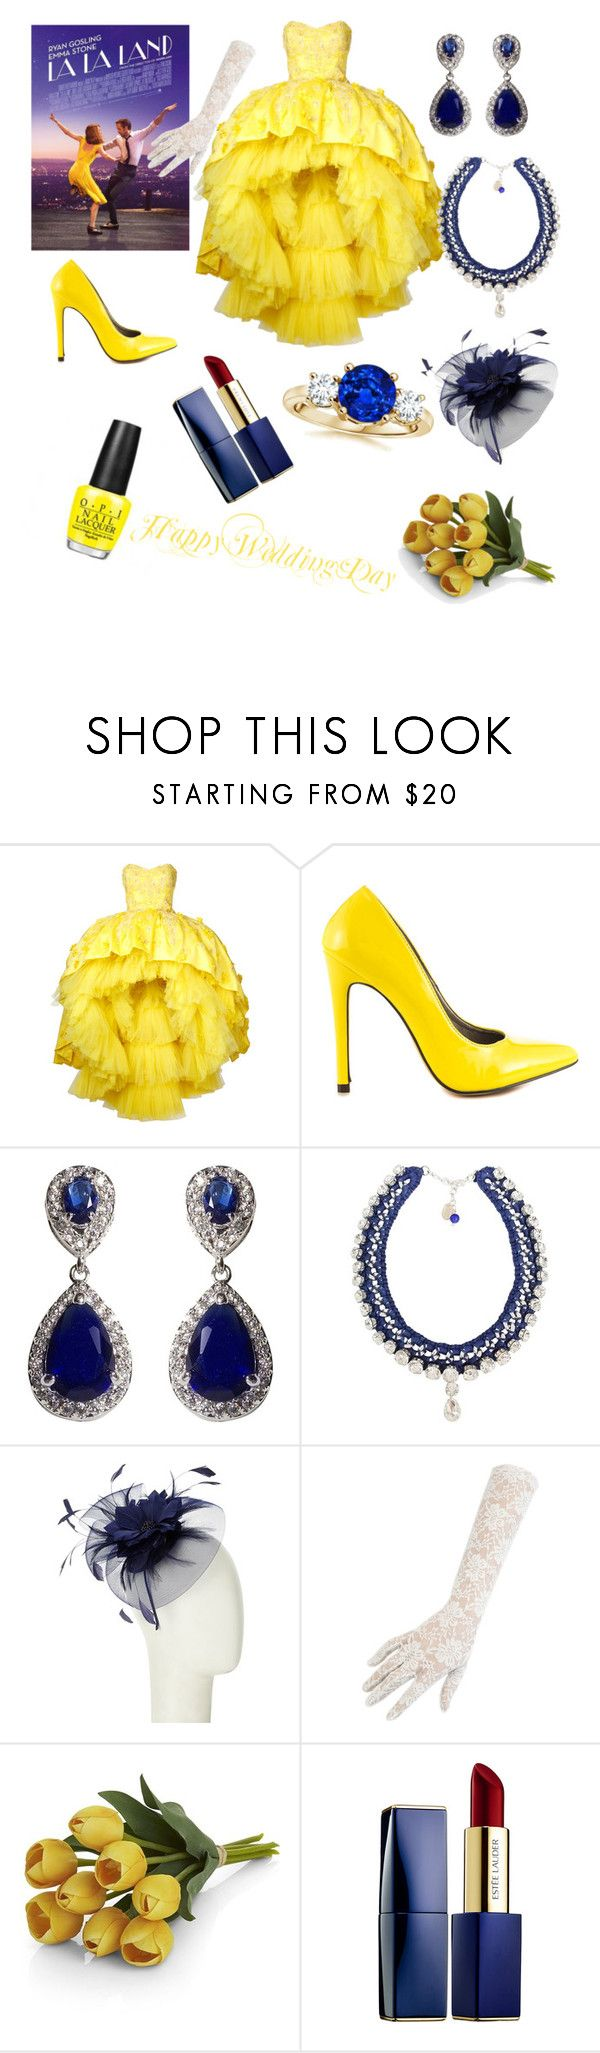 Wedding in La la land by feliciamia on Polyvore featuring Mikael D, Michael Antonio, Ricardo Rodriguez, NEXTE Jewelry, John Lewis, Black, Estée Lauder and Crate and Barrel